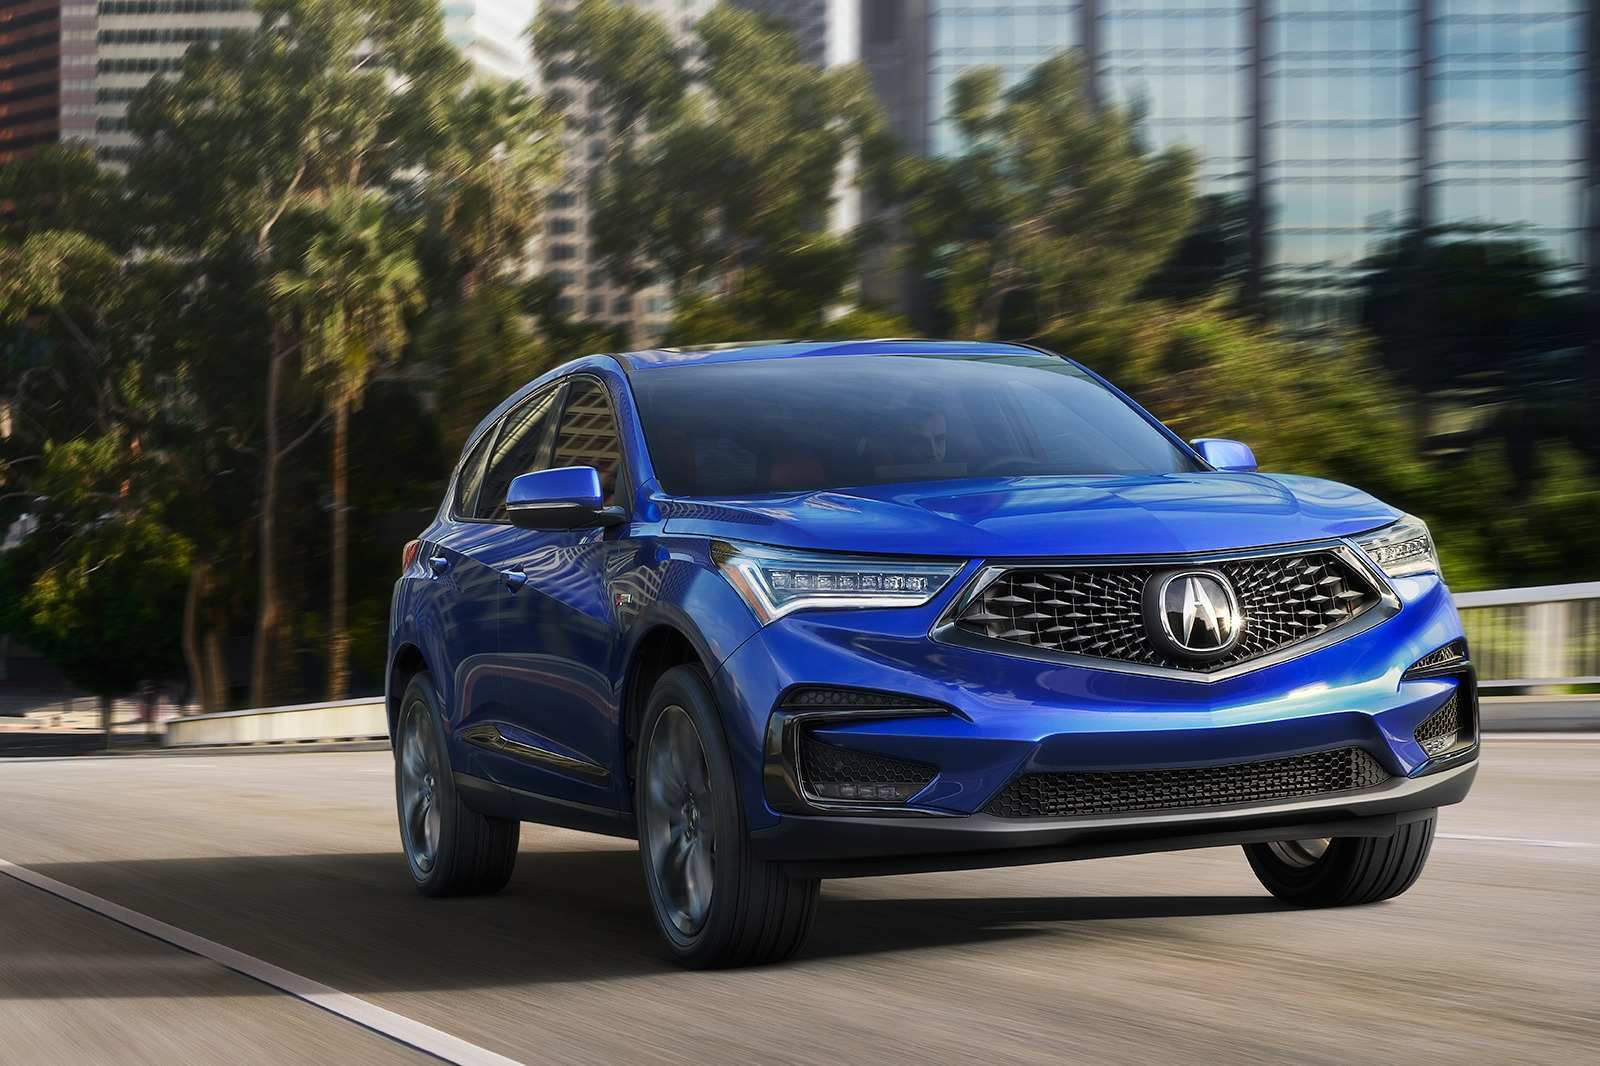 79 New Best 2019 Acura Packages First Drive Spesification with Best 2019 Acura Packages First Drive